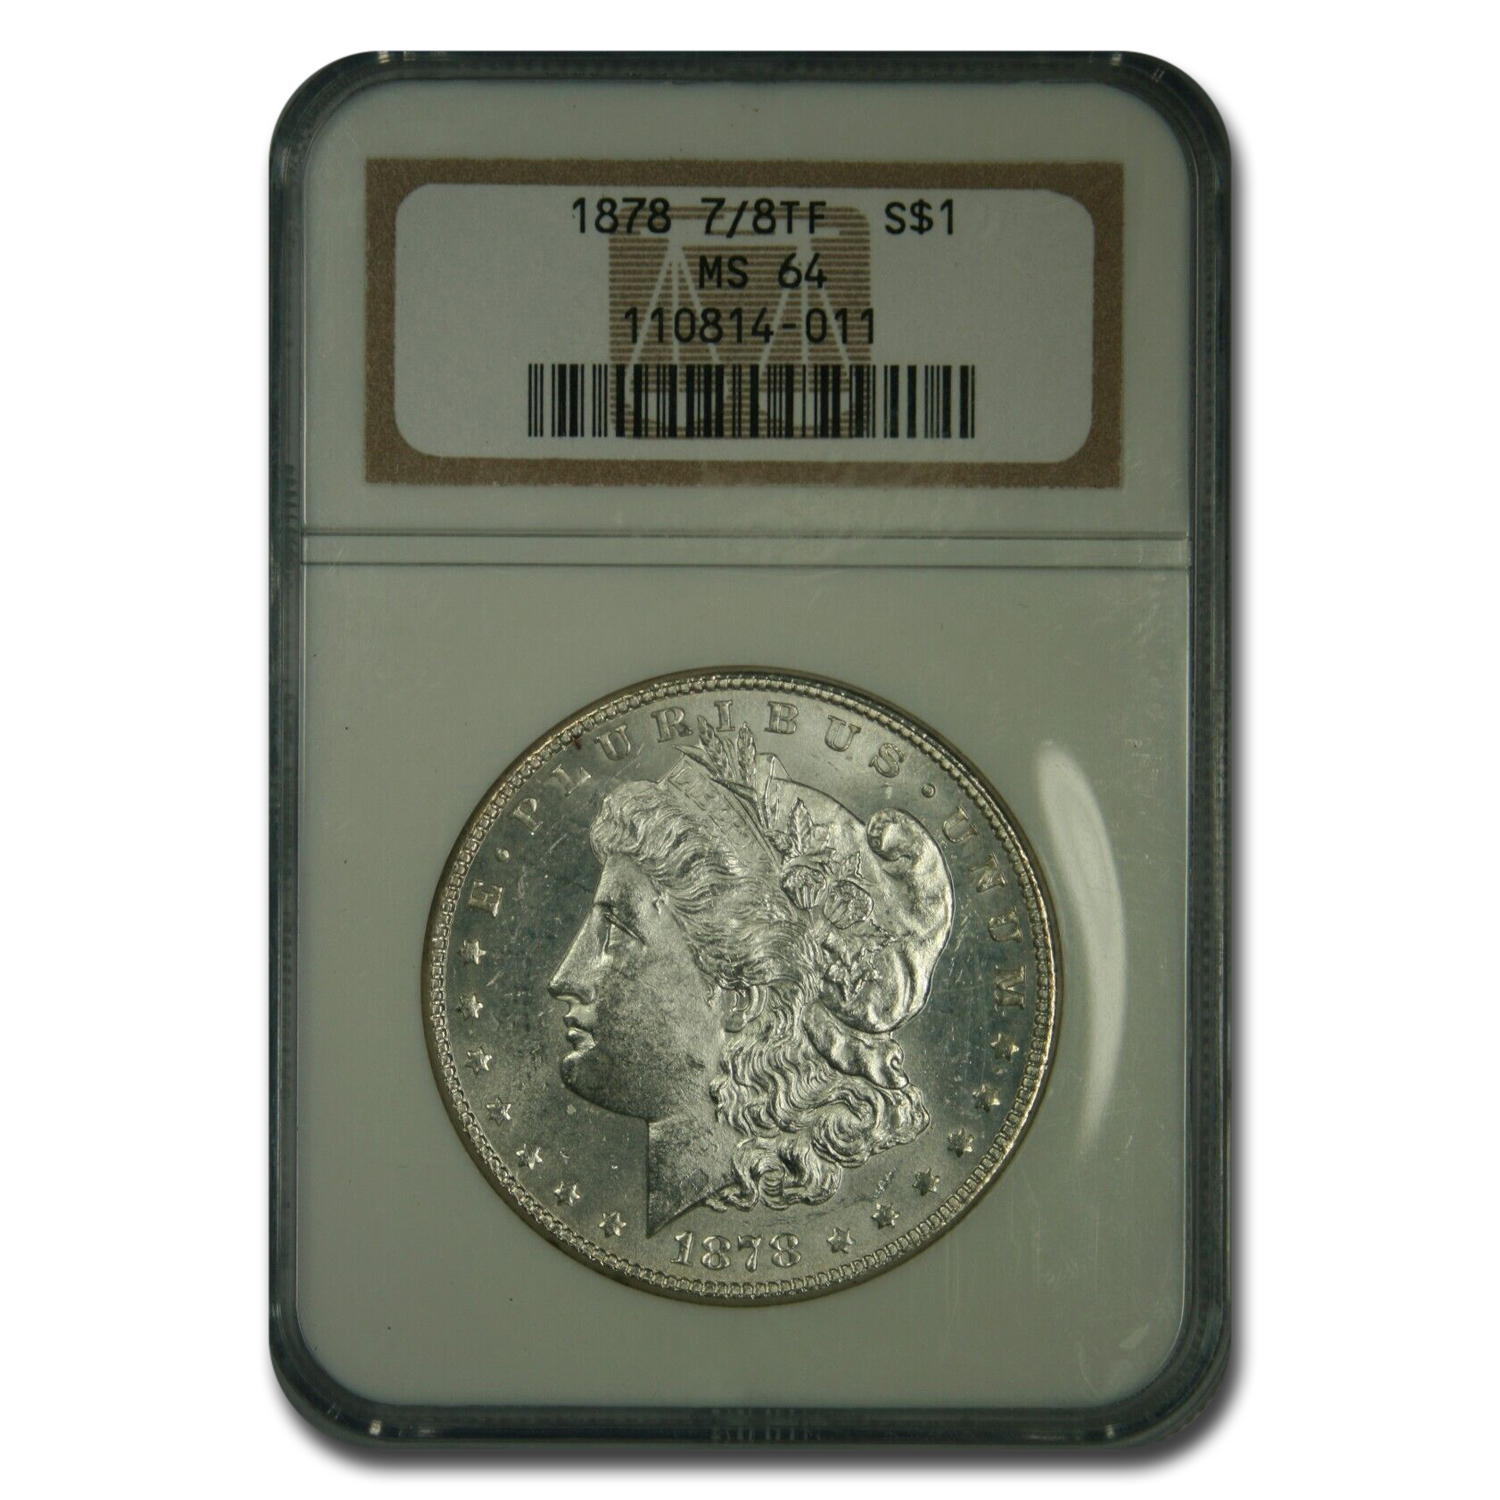 1878 Morgan Dollar 7/8 Tailfeathers - Strong MS-64 NGC